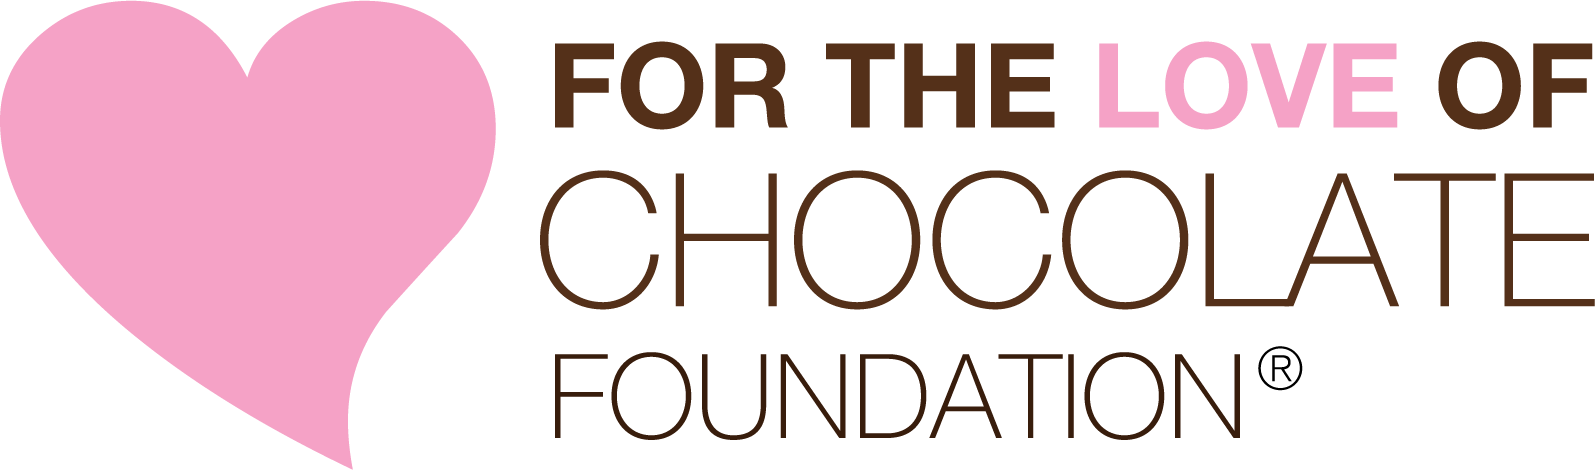 For The Love of Chocolate Foundation